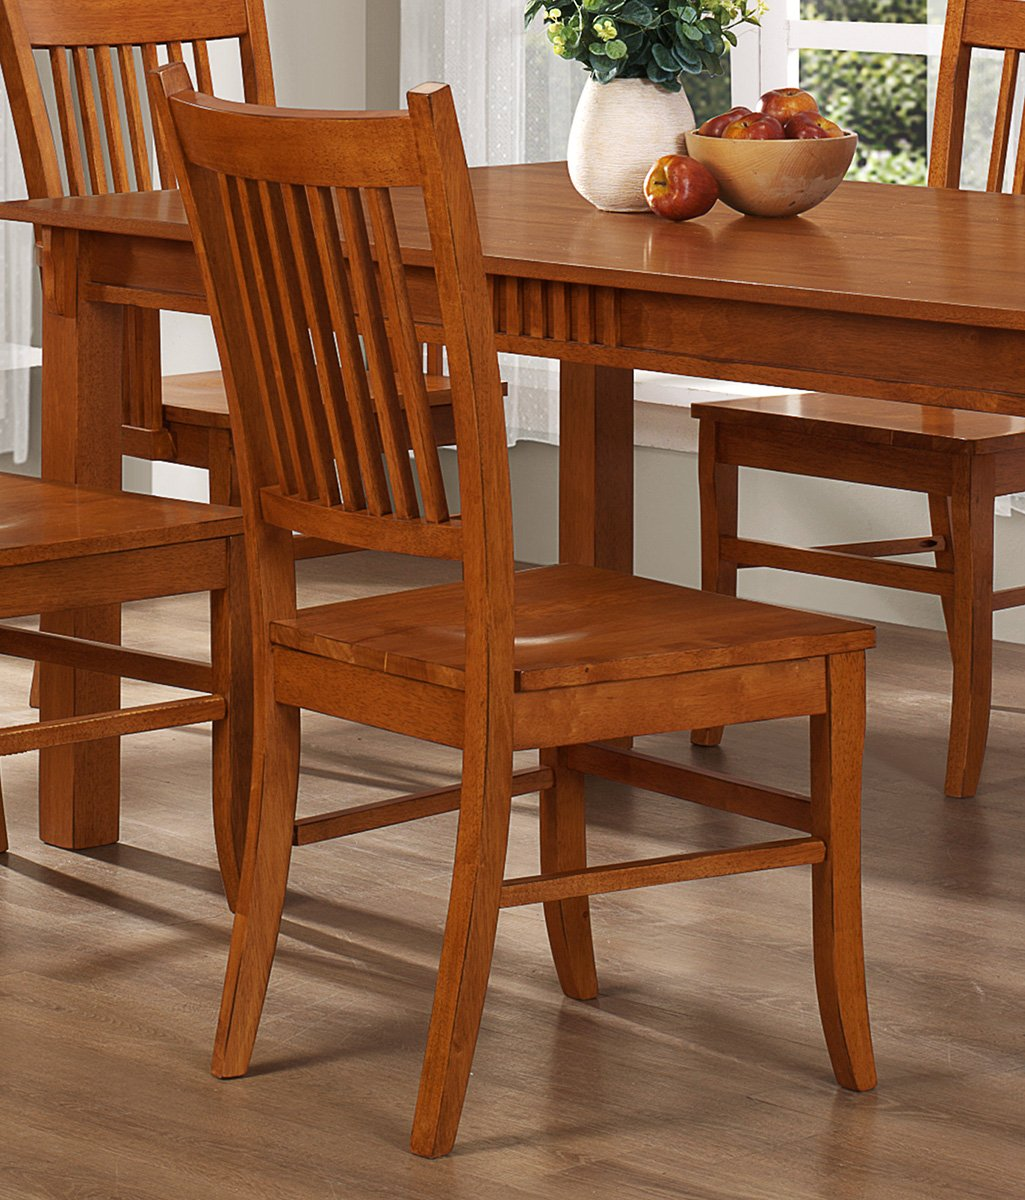 Dining & Kitchen Chairs For Heavy People [Up To 1000LB] | For Big & Heavy People